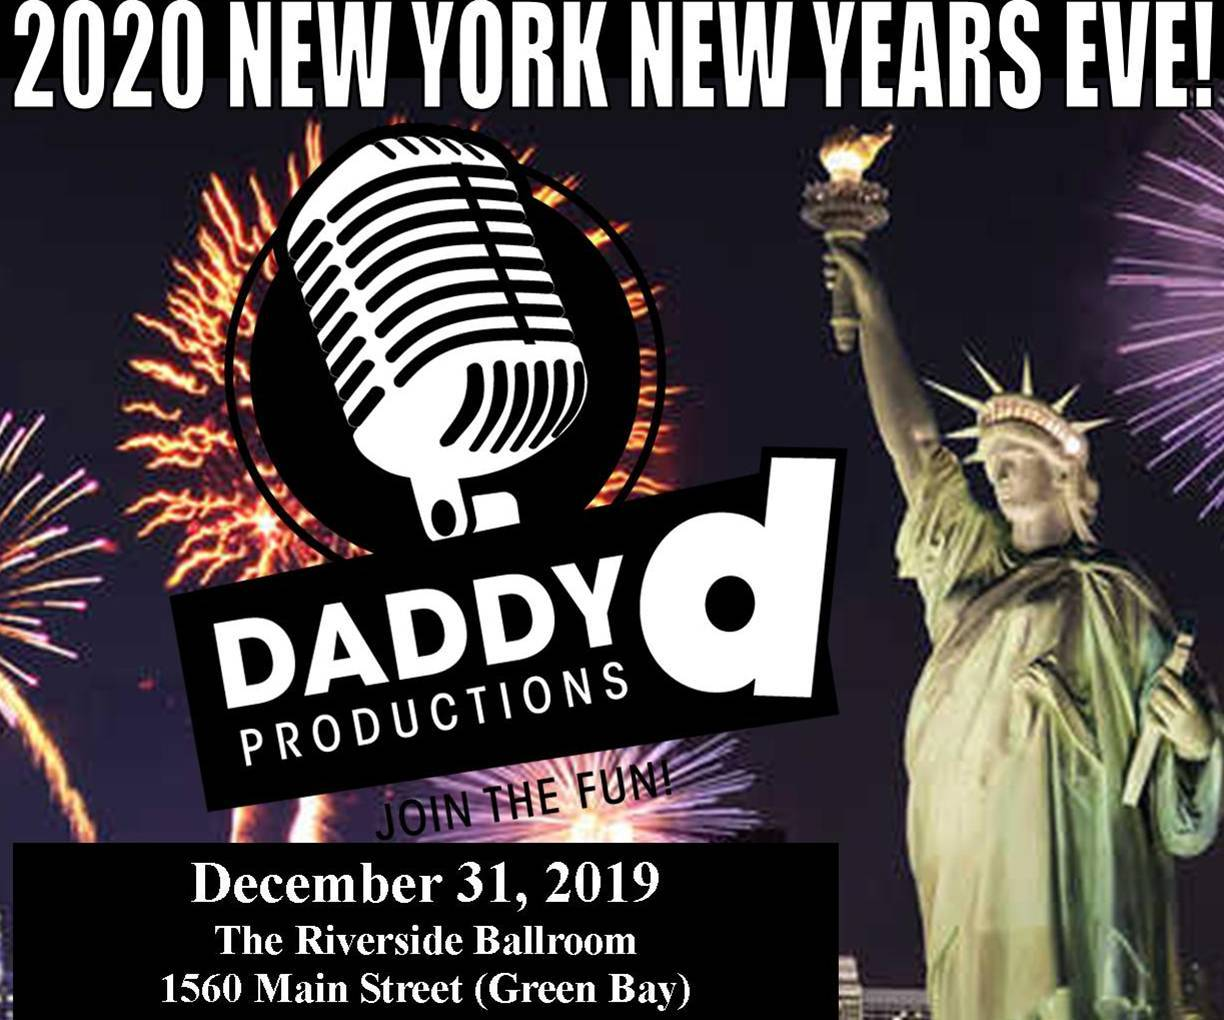 Daddy D New York New Year's Eve!